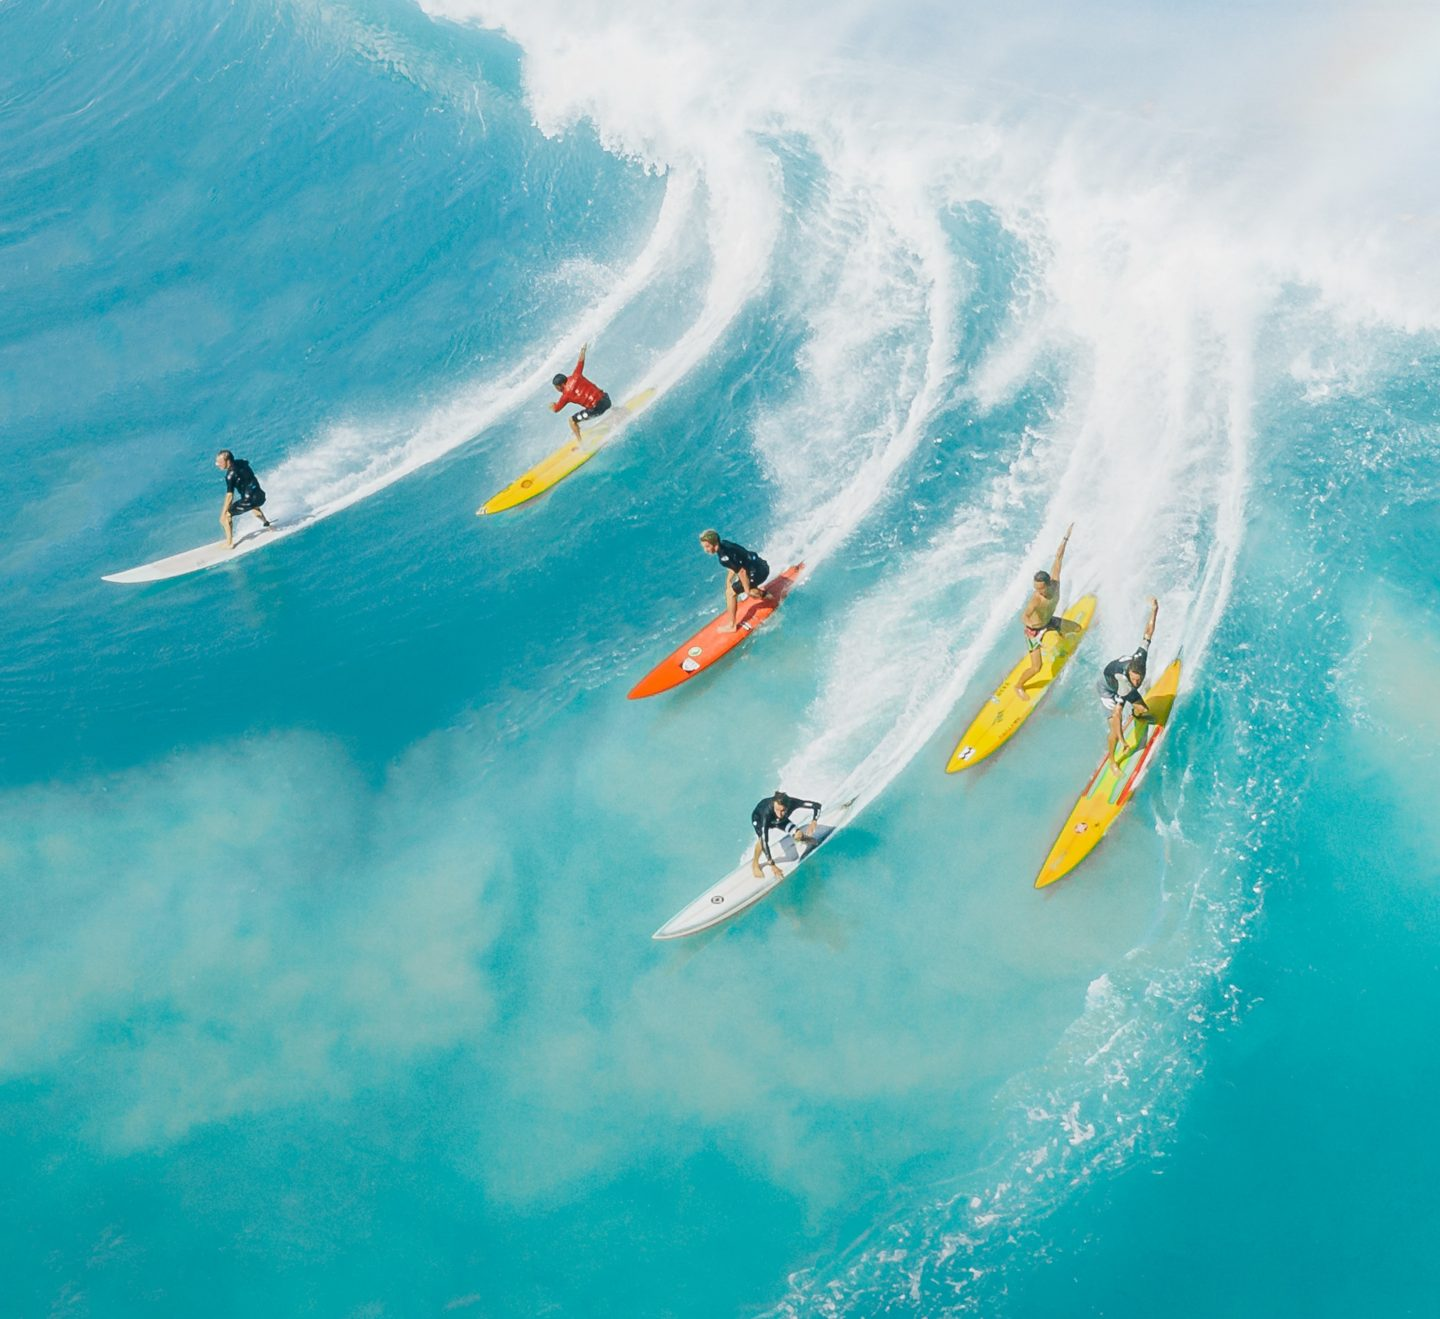 Several people surfing on a big wave